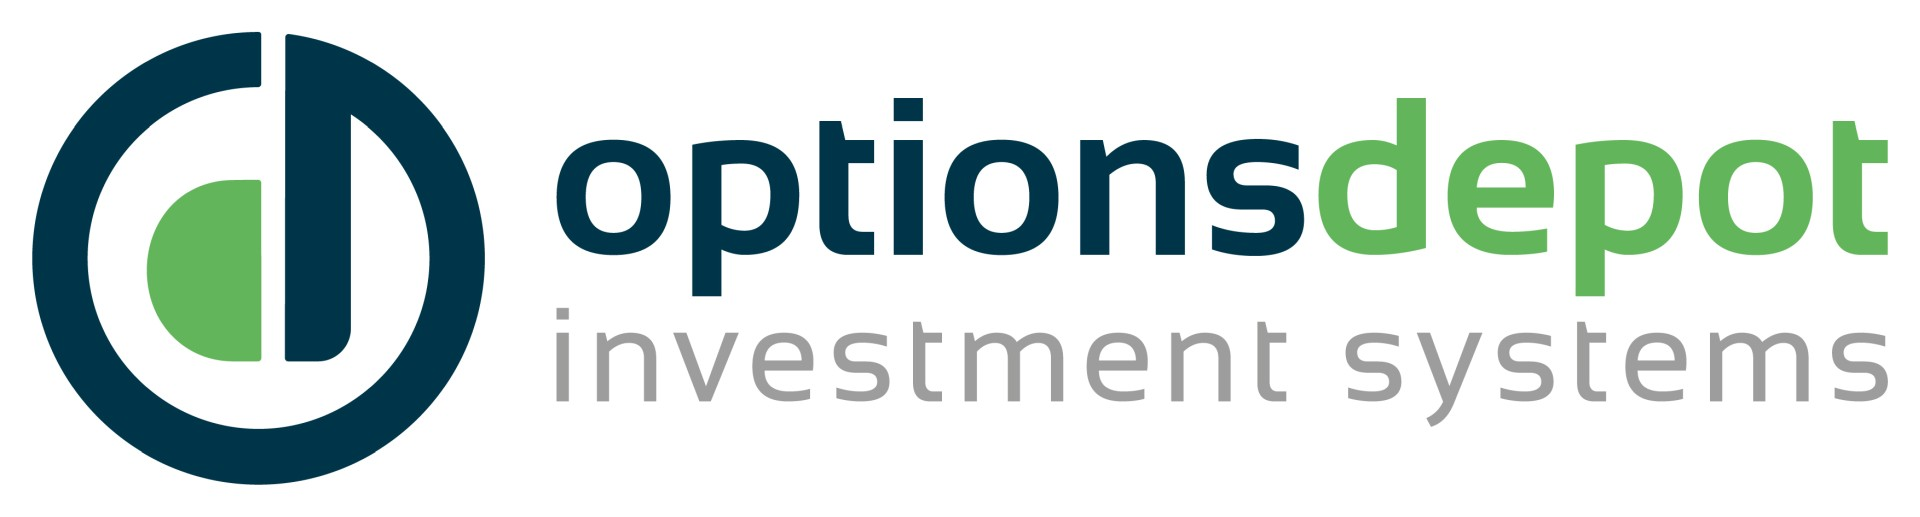 optionsdepot investment systems